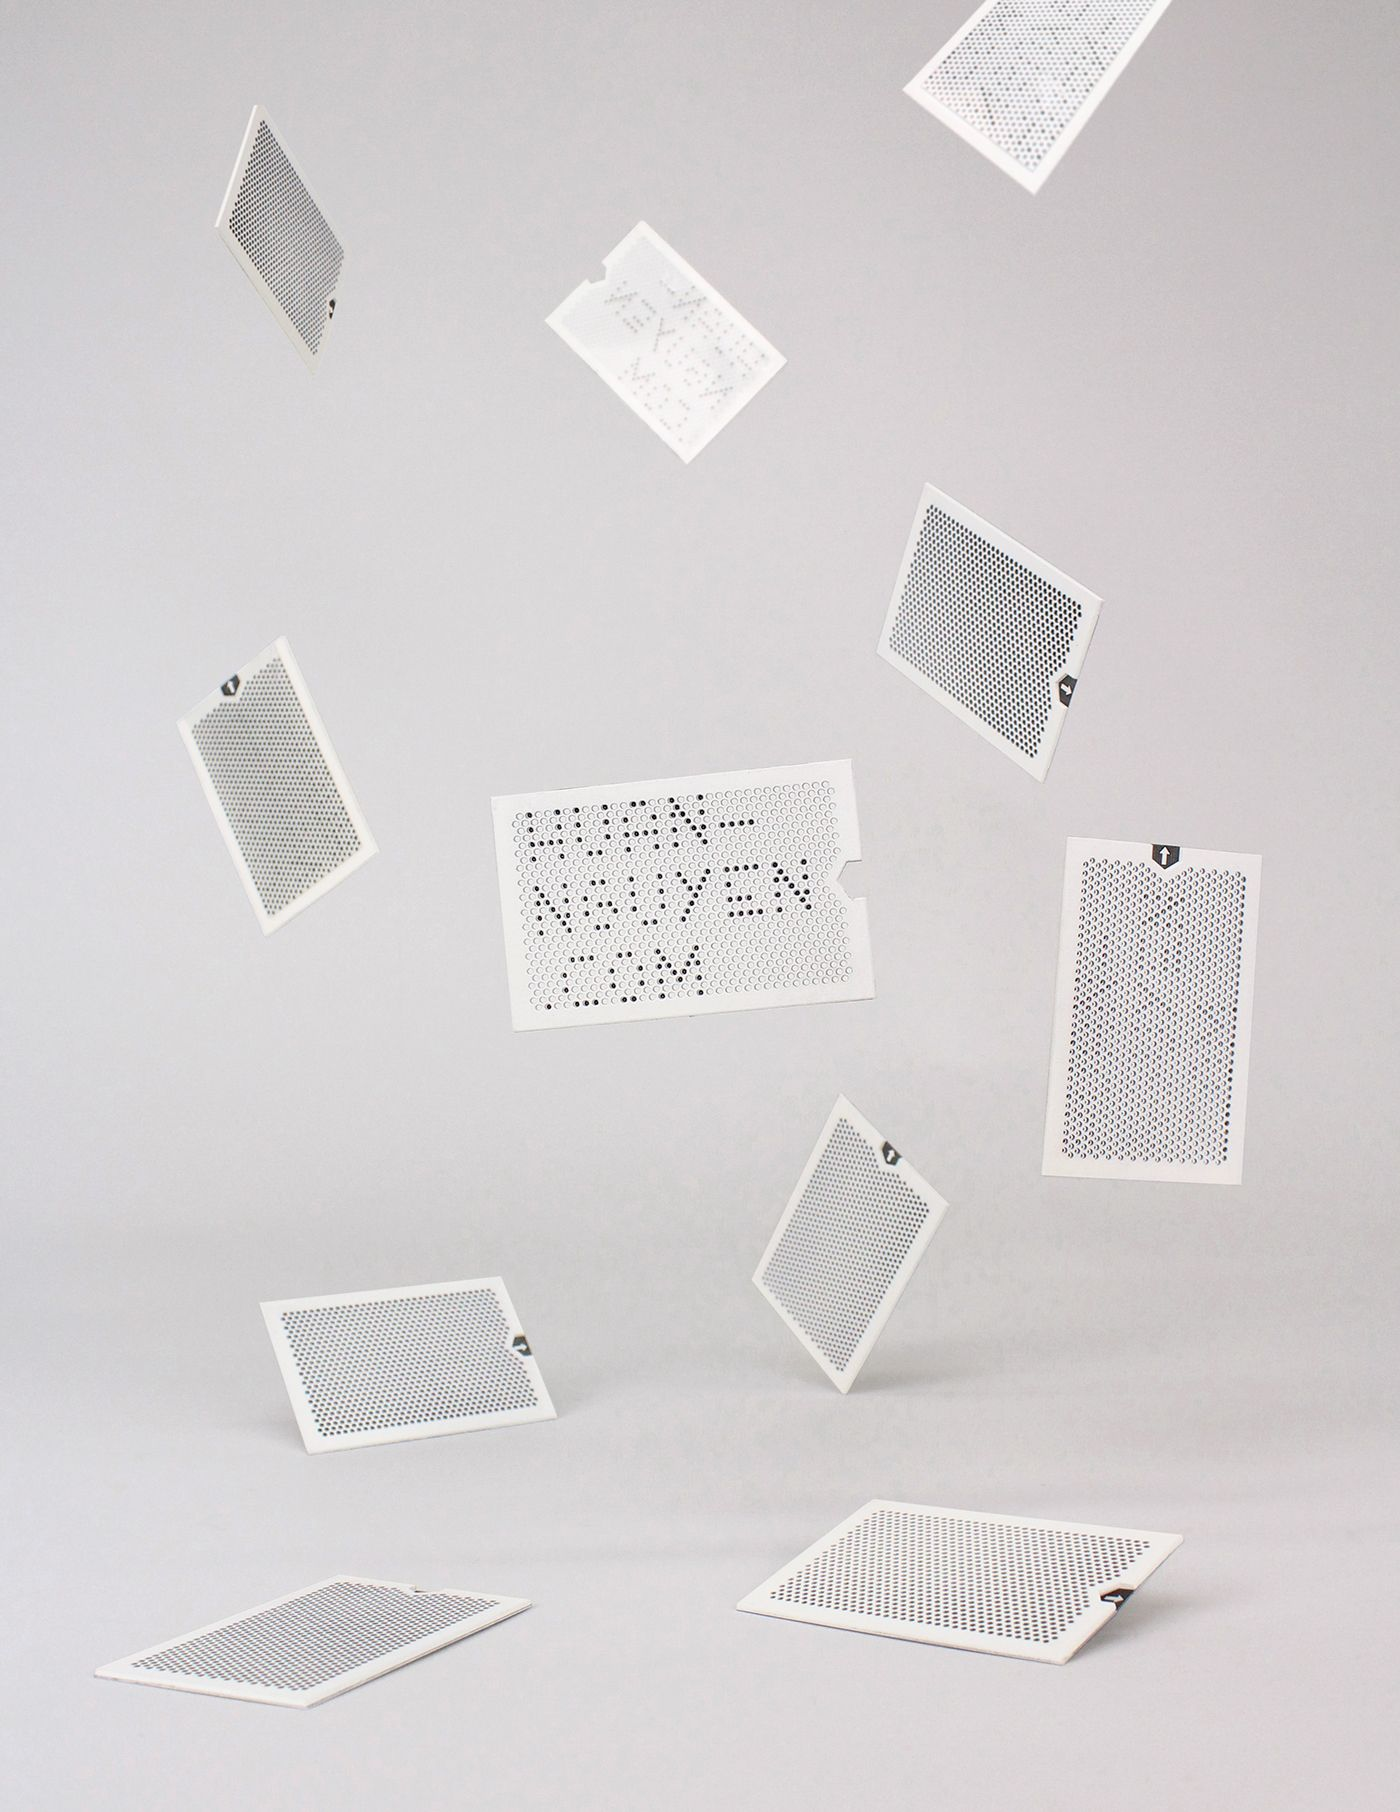 Unconventional Business Cards on Behance | g r a p h i c s | Pinterest